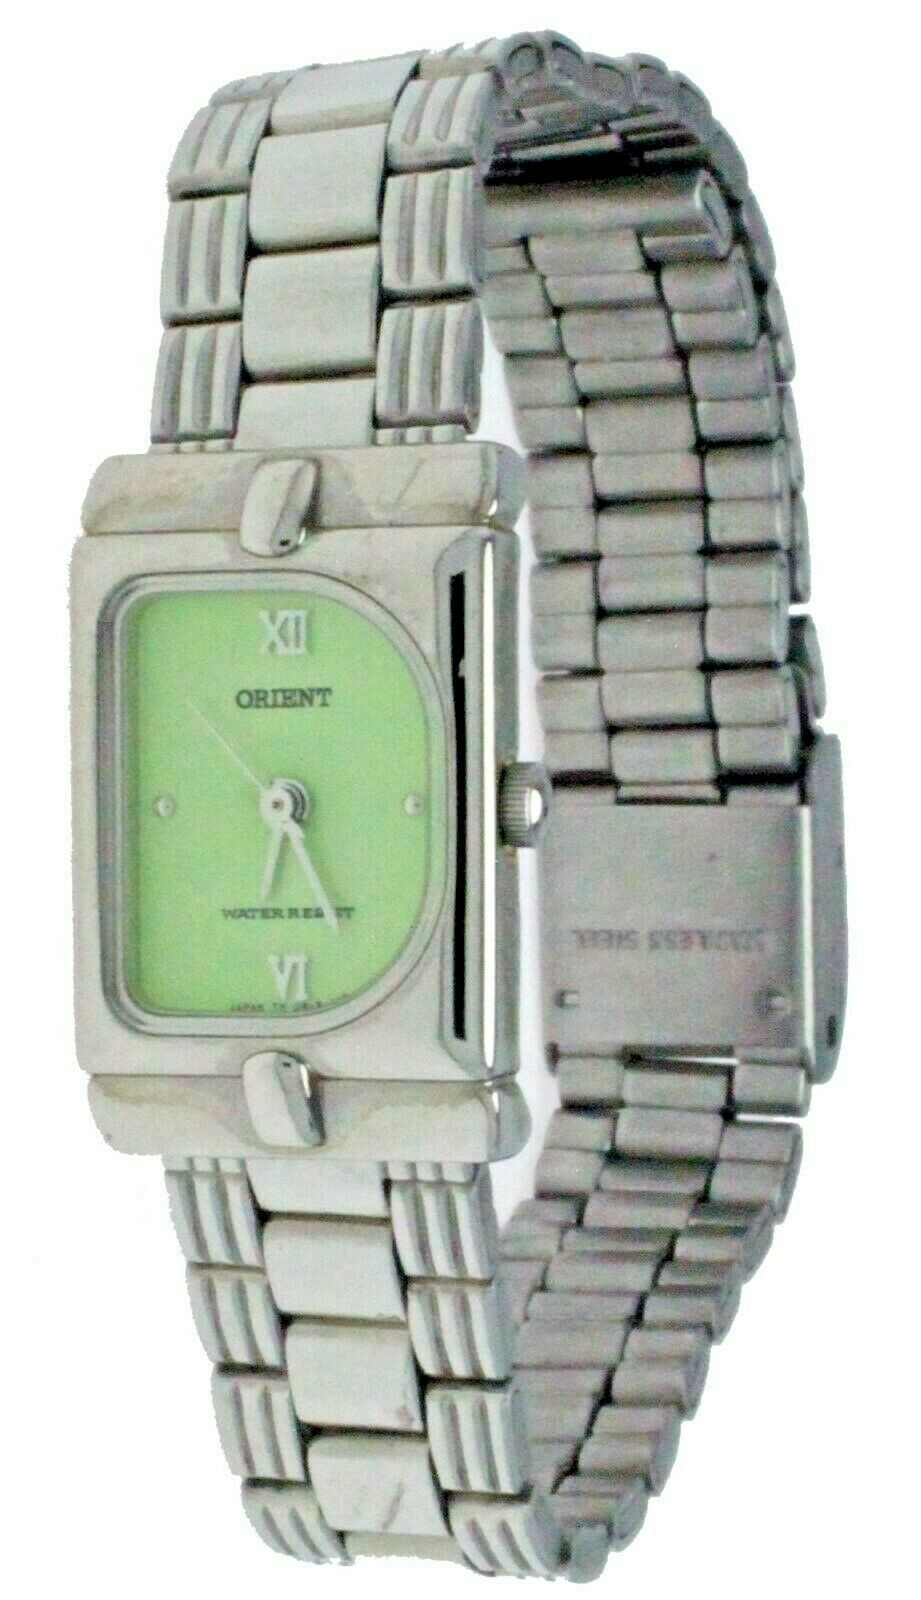 Primary image for New ORIENT Quartz Watch S / Steel Band & Case Adjustable Buckle Water Resistant